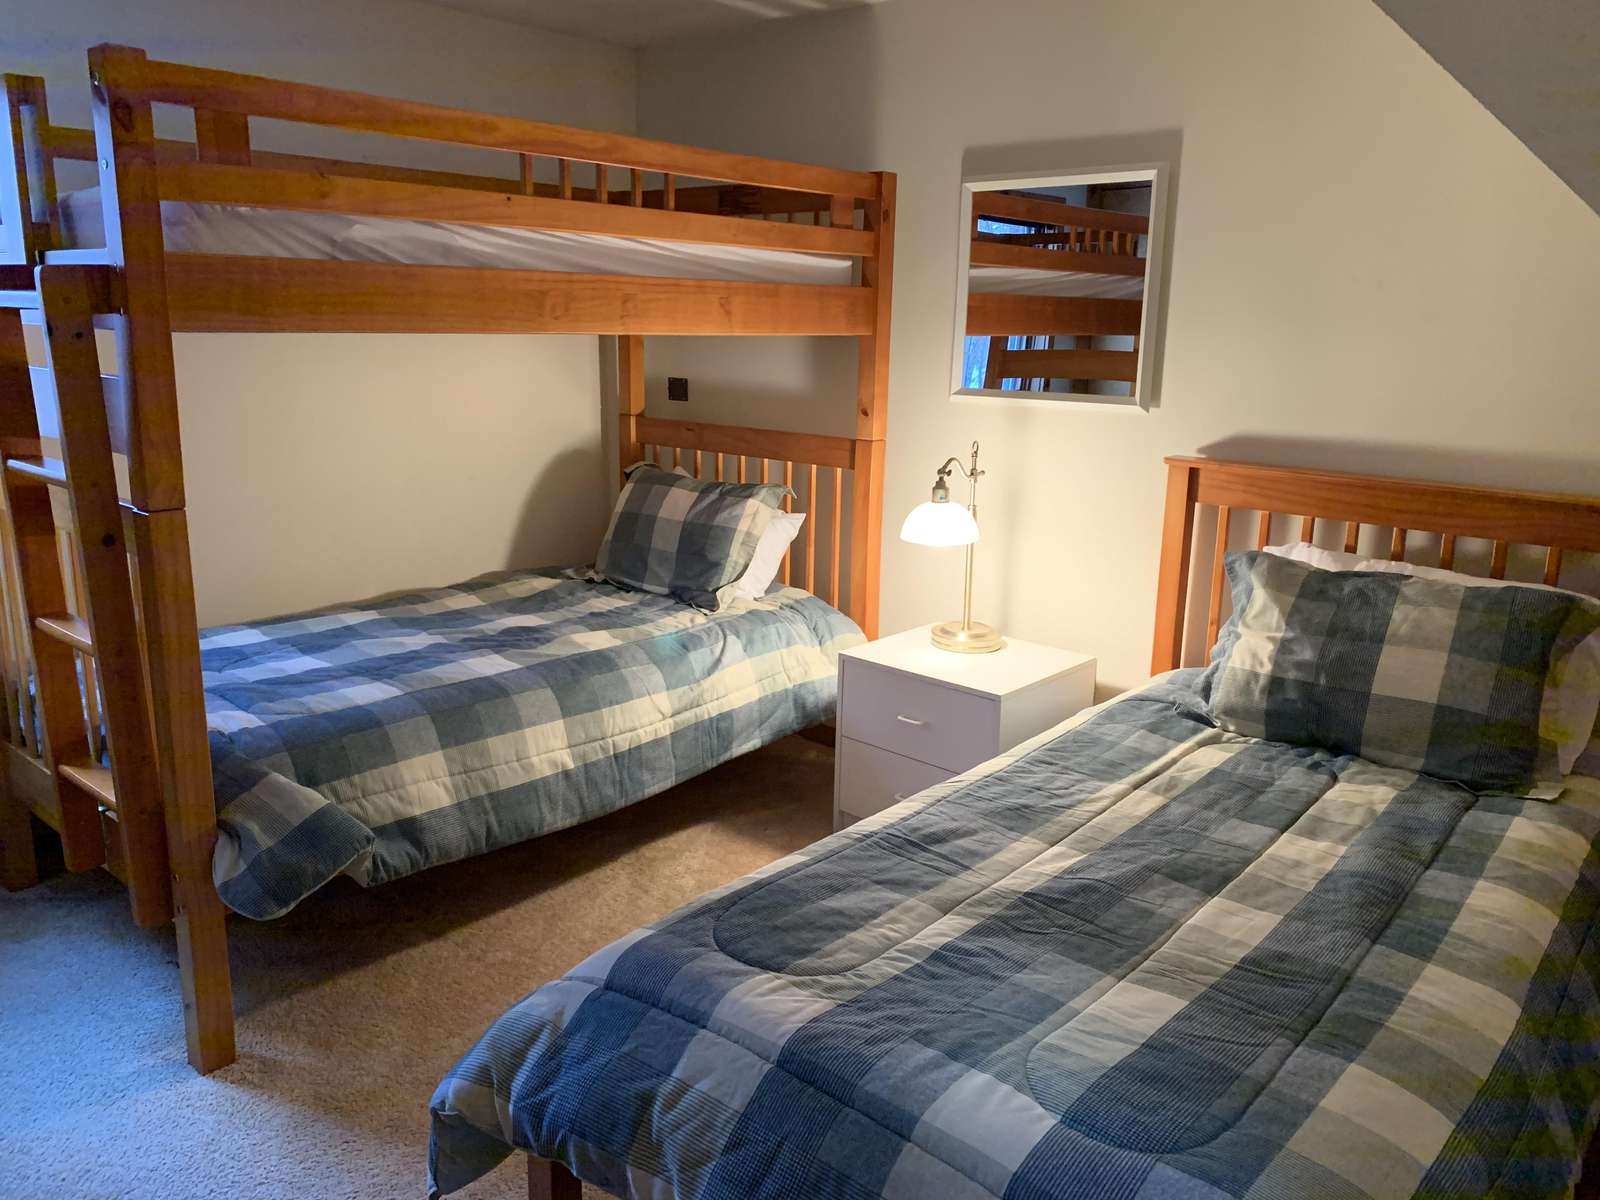 3rd bedroom - bunks and a twin